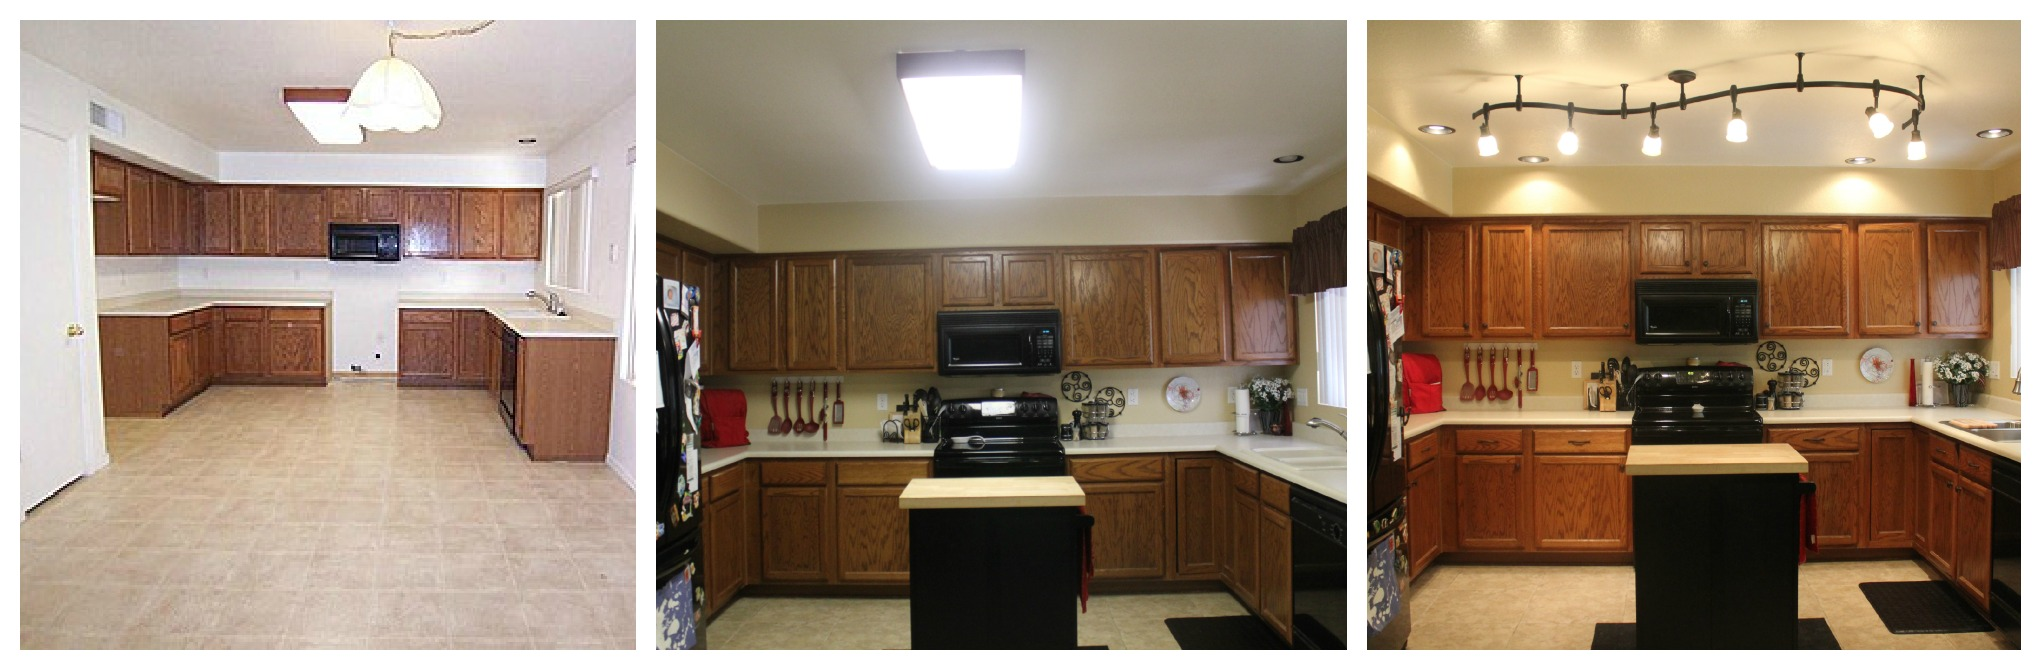 Kitchen Light In Mini Kitchen Remodel New Lighting Makes A World Of Difference